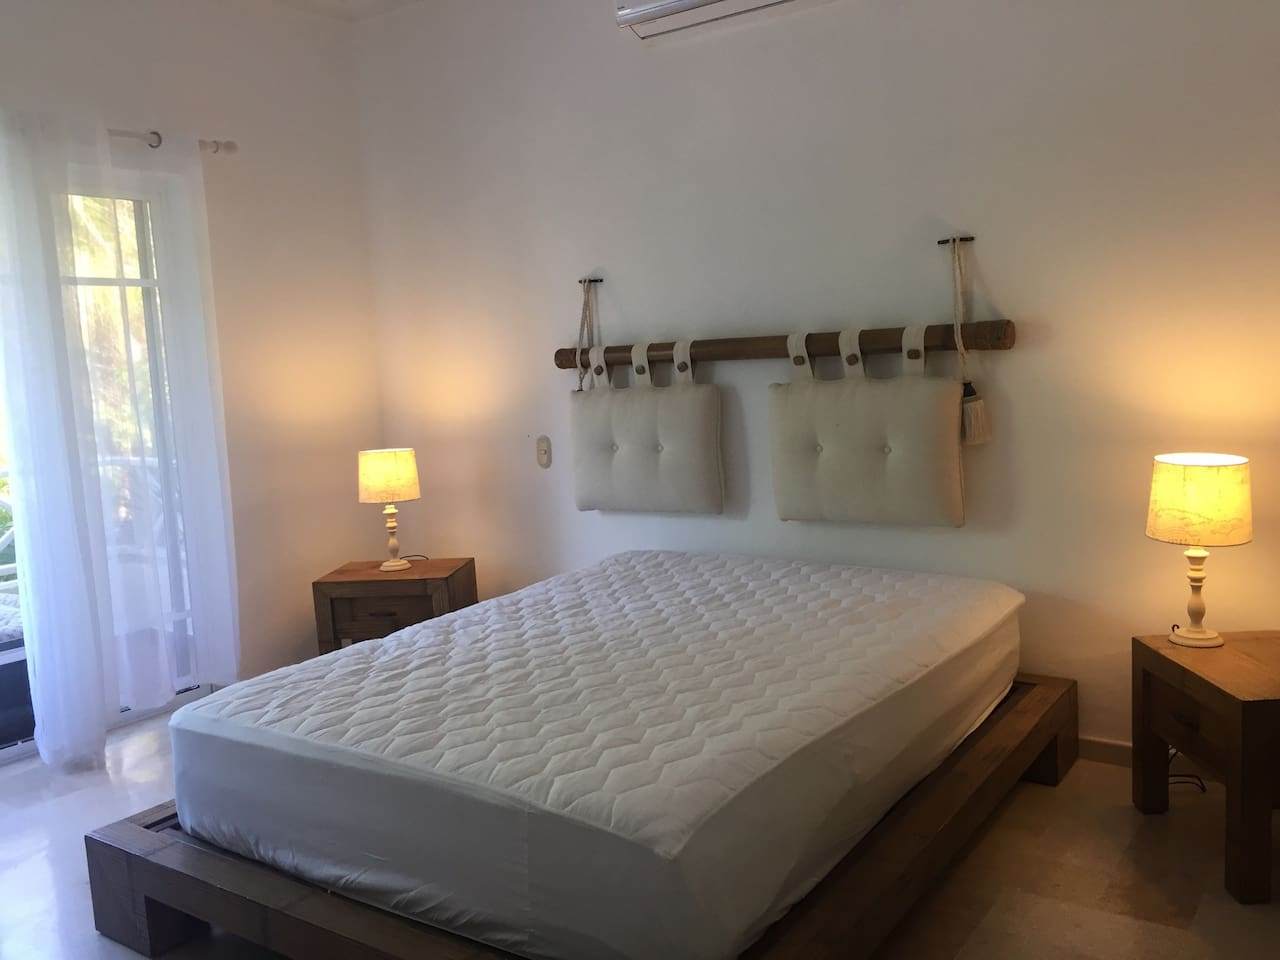 This one is the another bedroom. Is it rented separately.